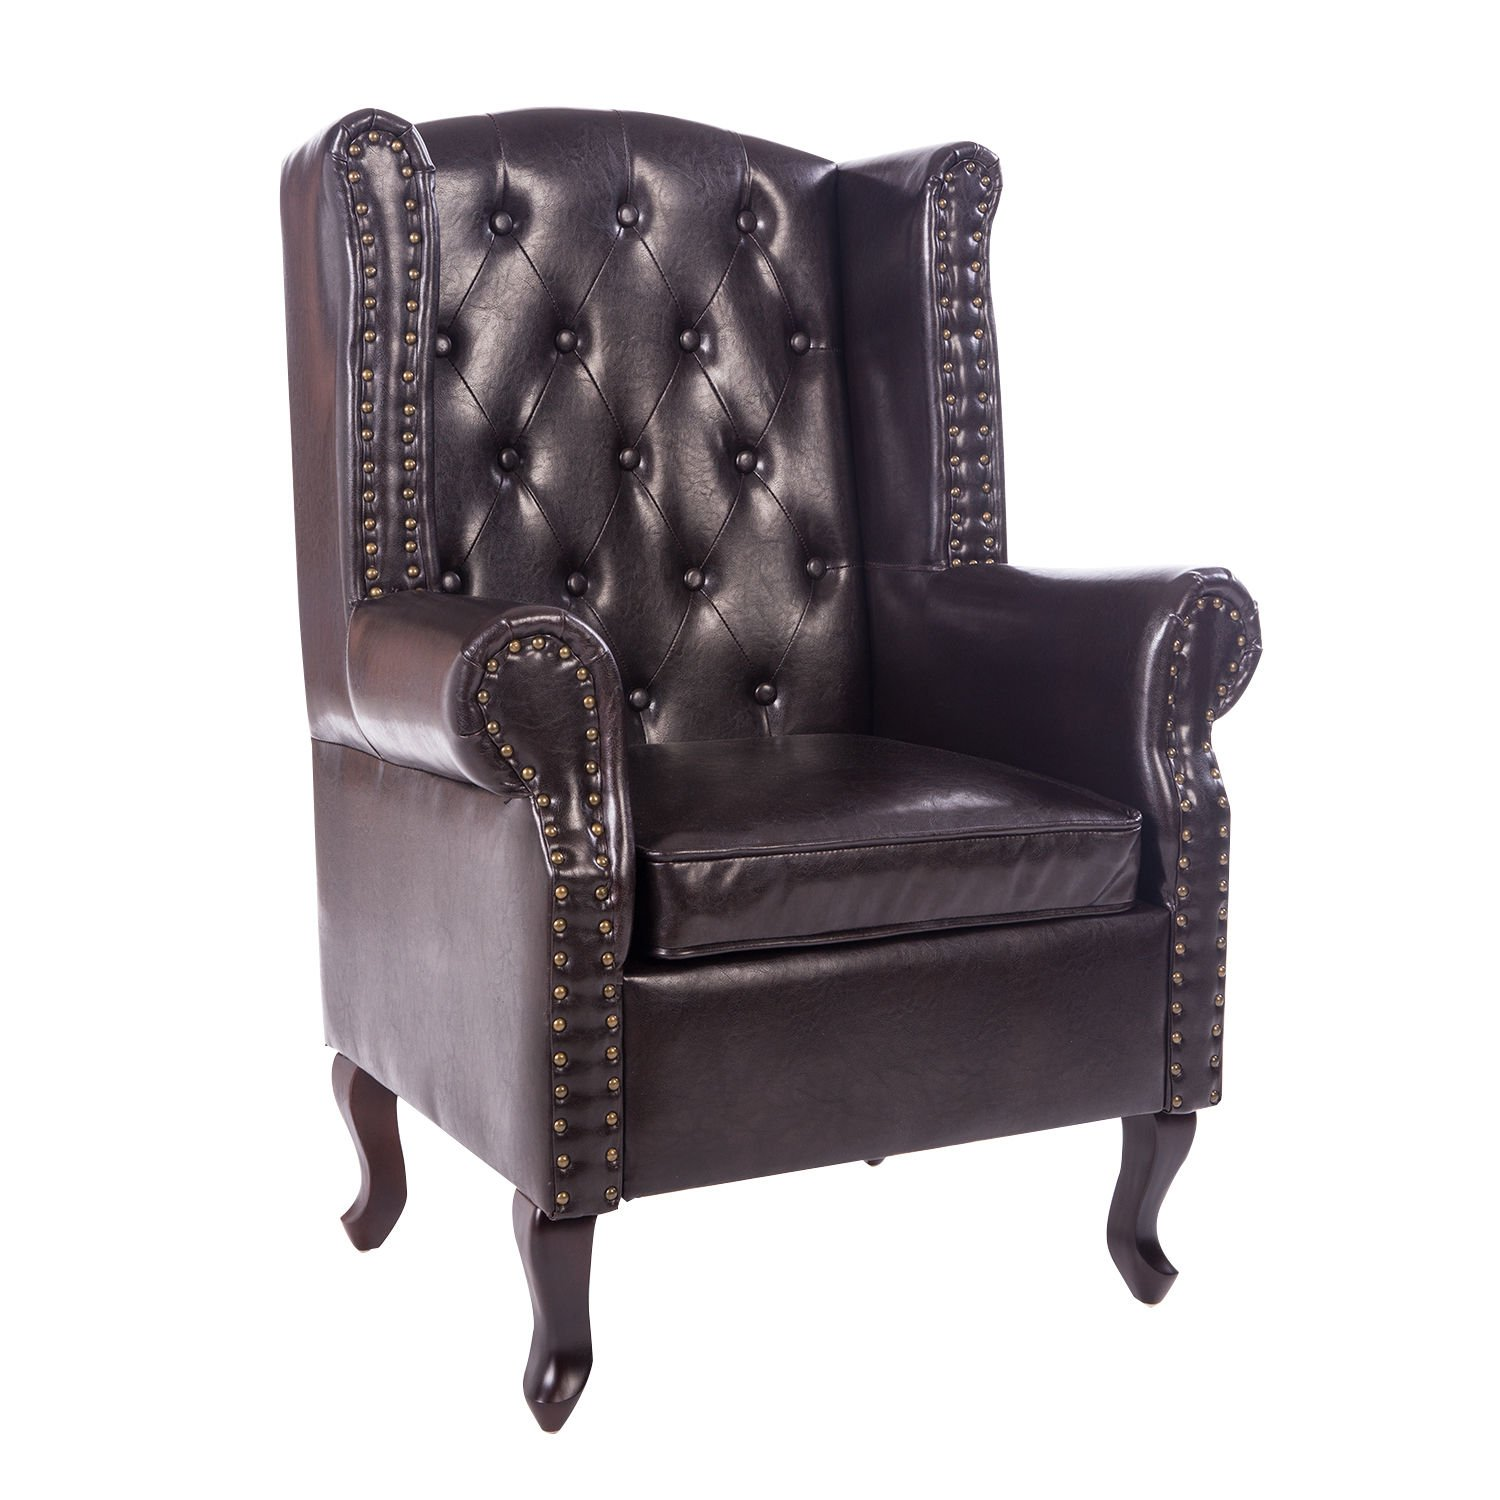 HOMCOM Antique High Back Chair PU Leather Seat Chesterfield Type Armchair Queen Anne Fireside Chair w/Cushion (Brown Sold by MHSTAR